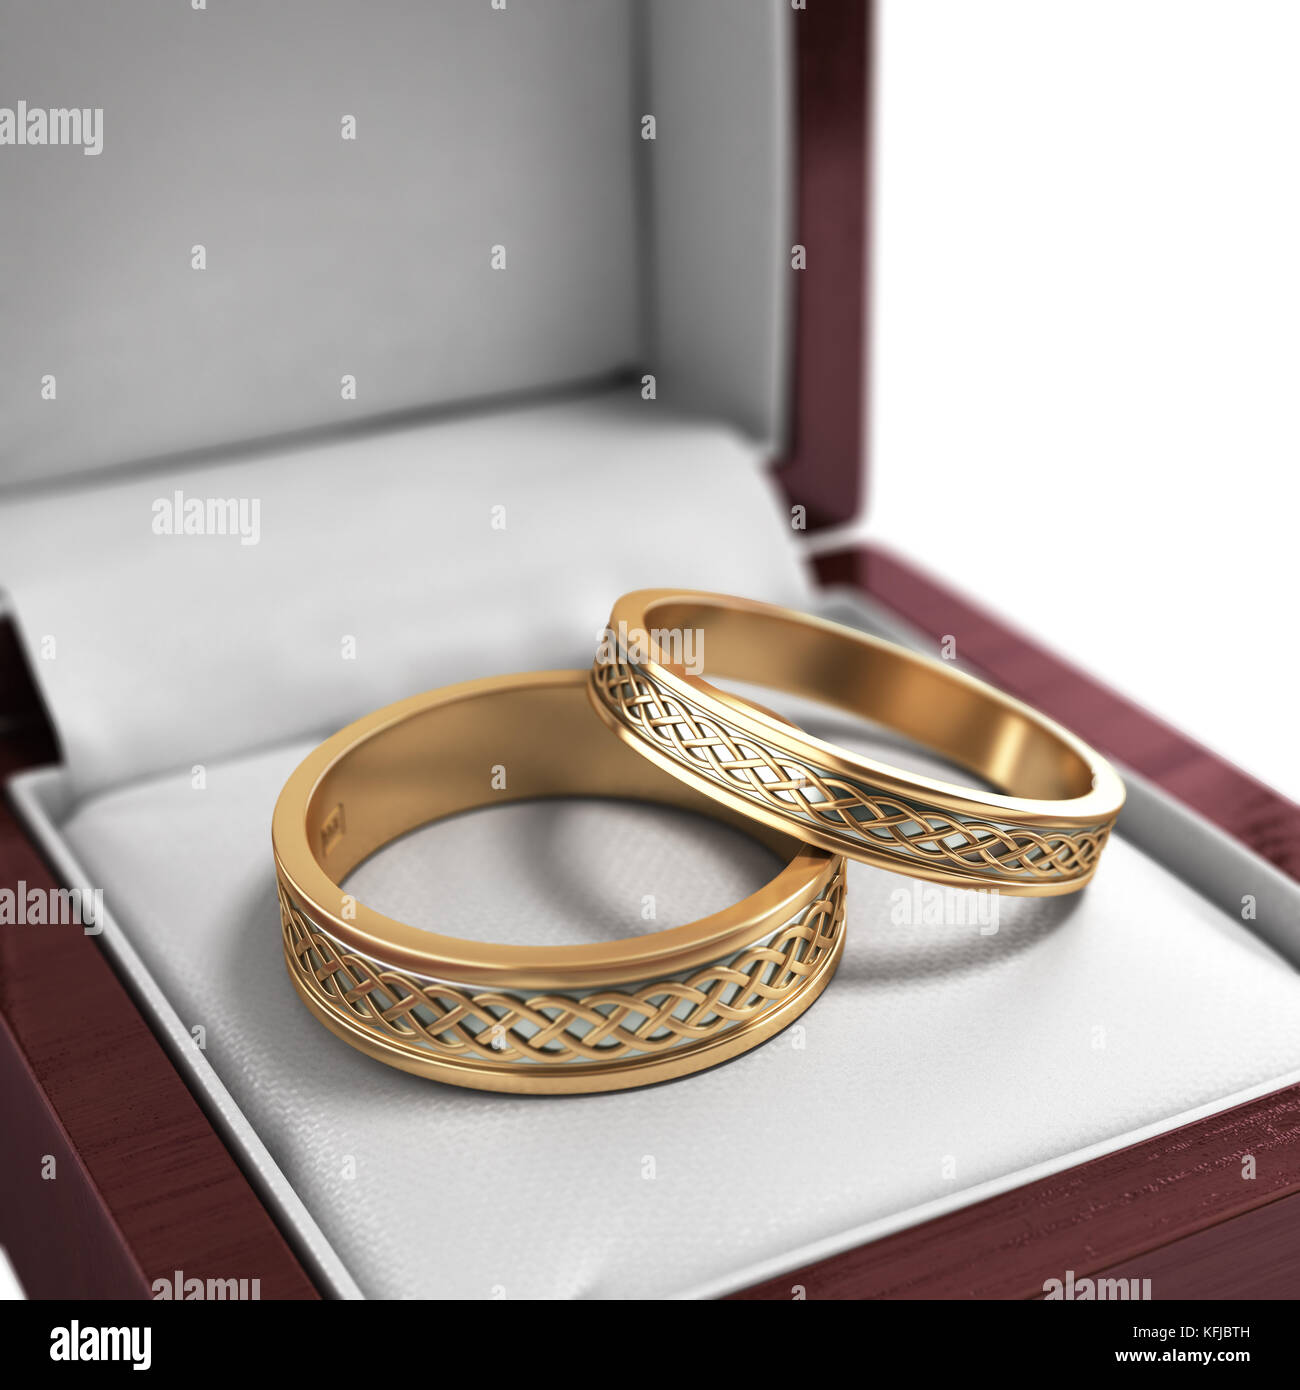 Wedding Bands Wedding Rings In The Red Box Wedding Jewelry